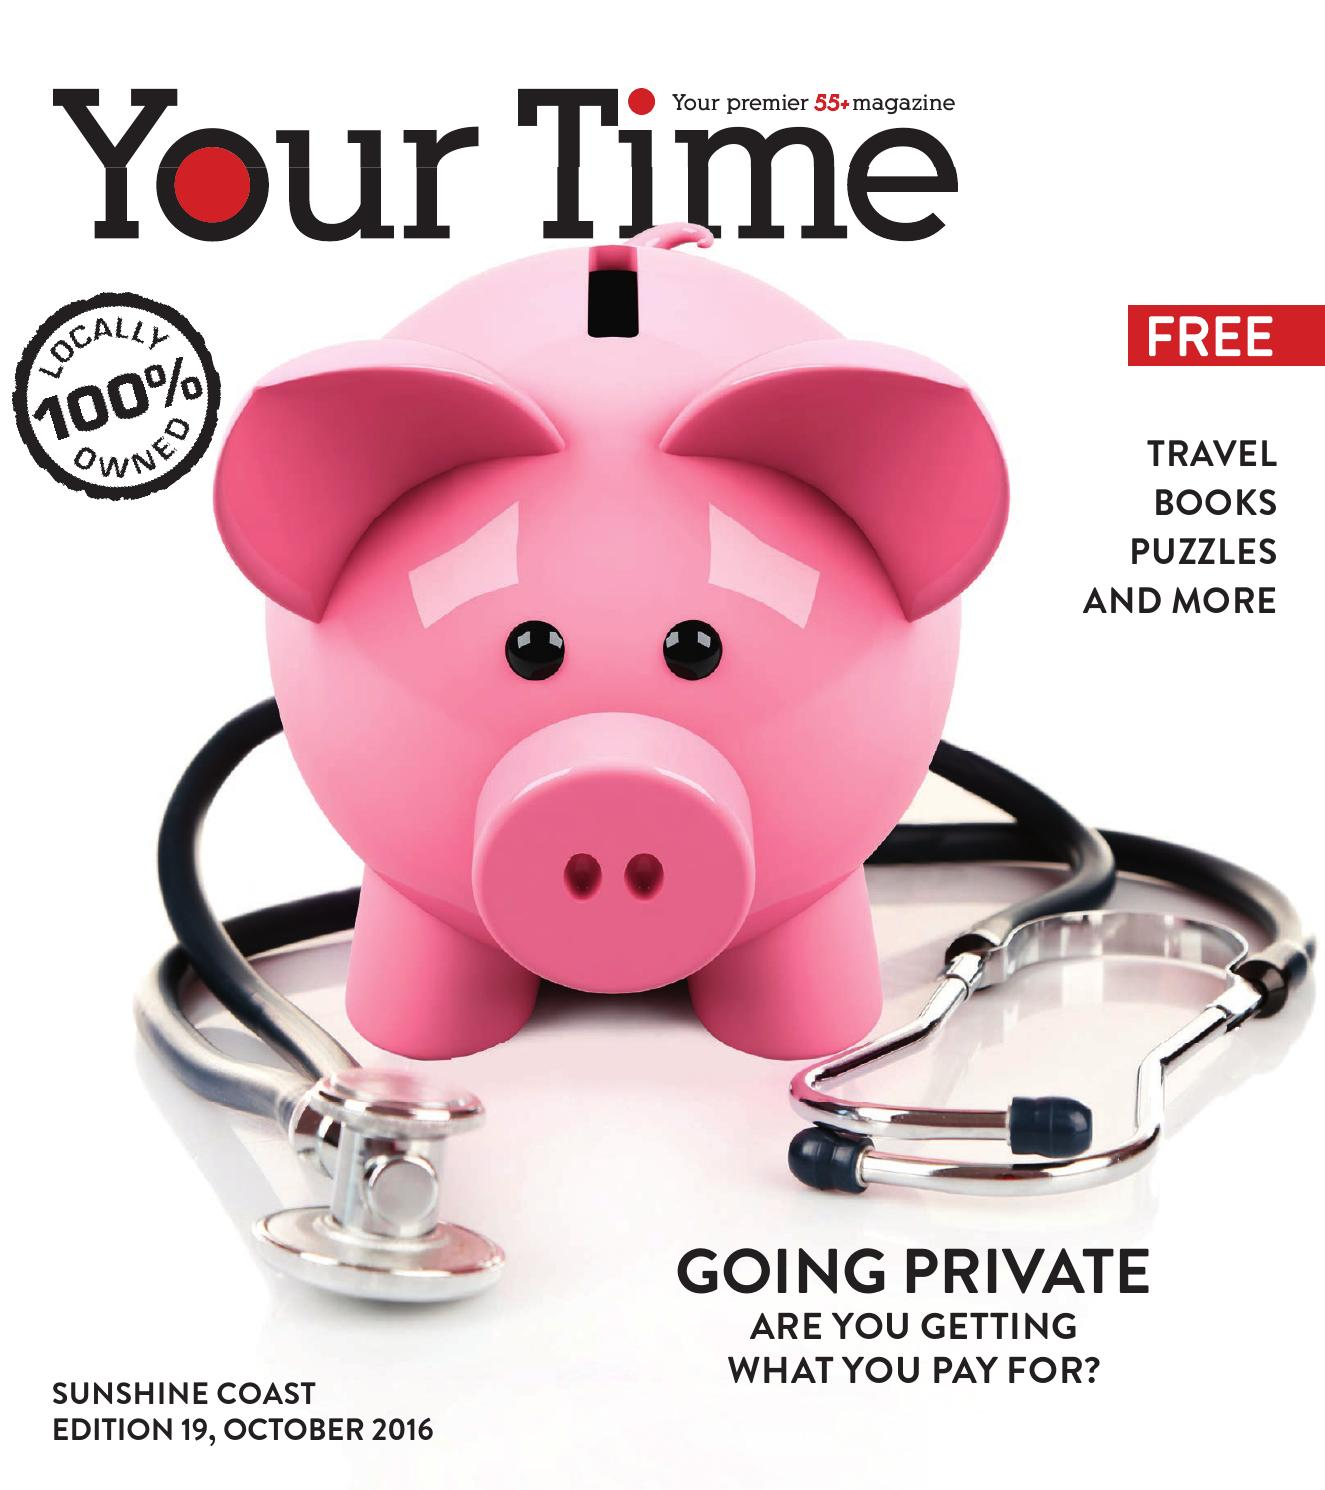 Your time sc oct 2016 by My Weekly Preview - issuu